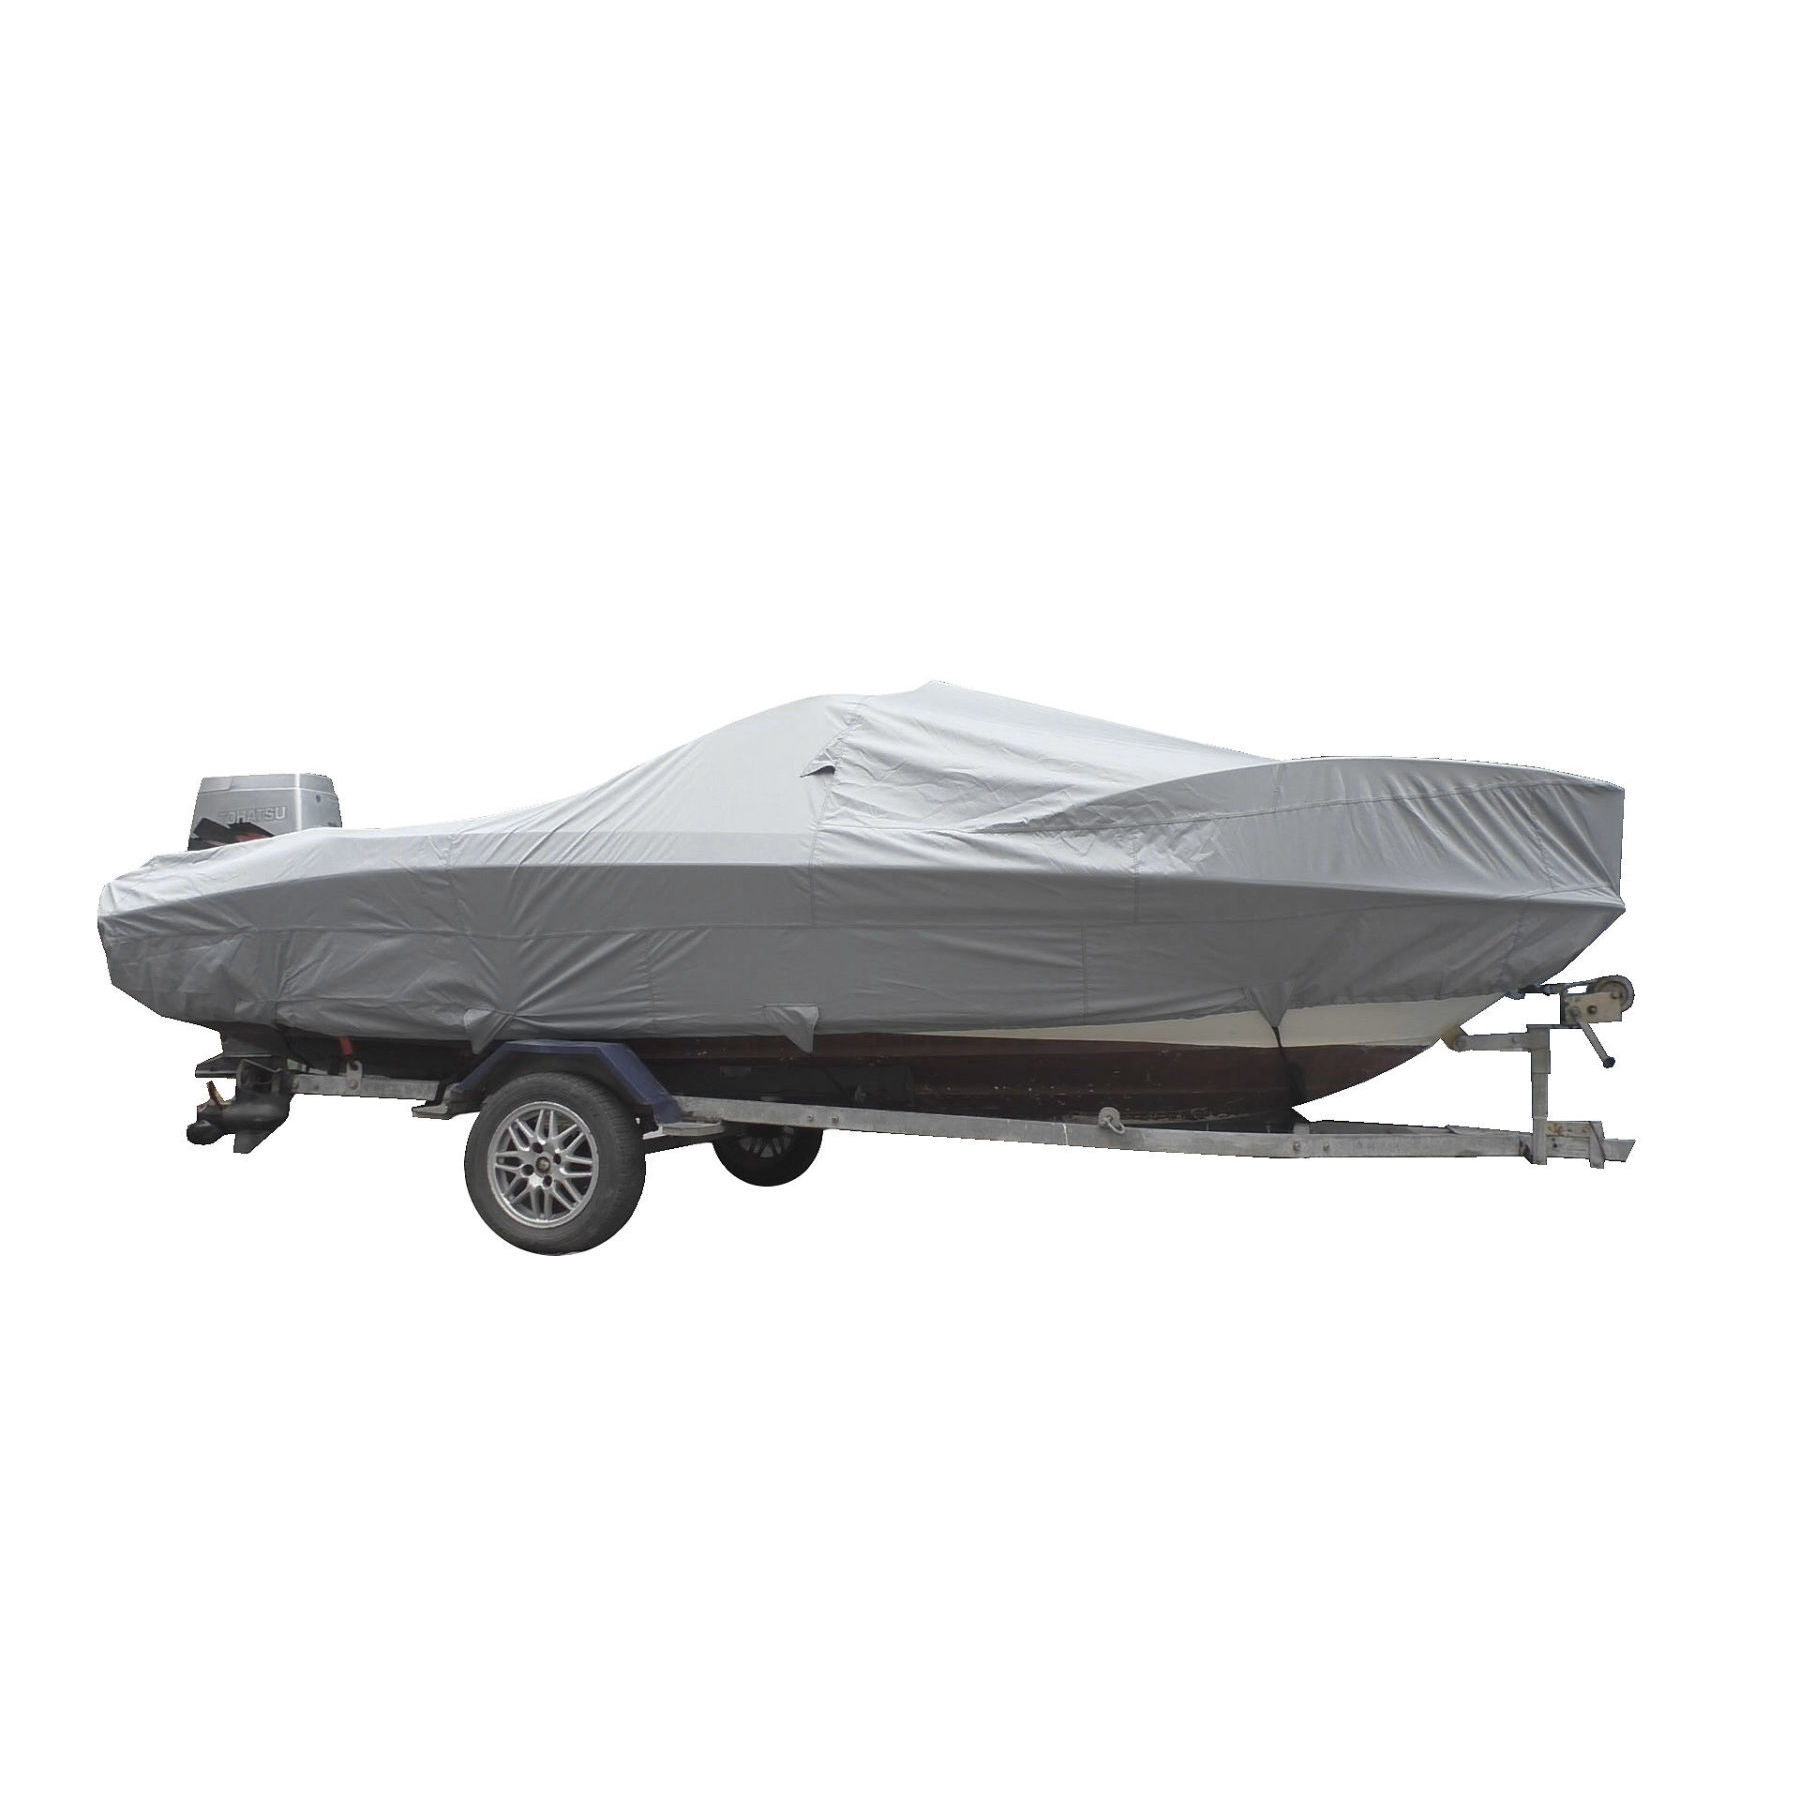 Awning Transport Ripstop For A Boat 6,4-7 M Long, Gray Tg-2169